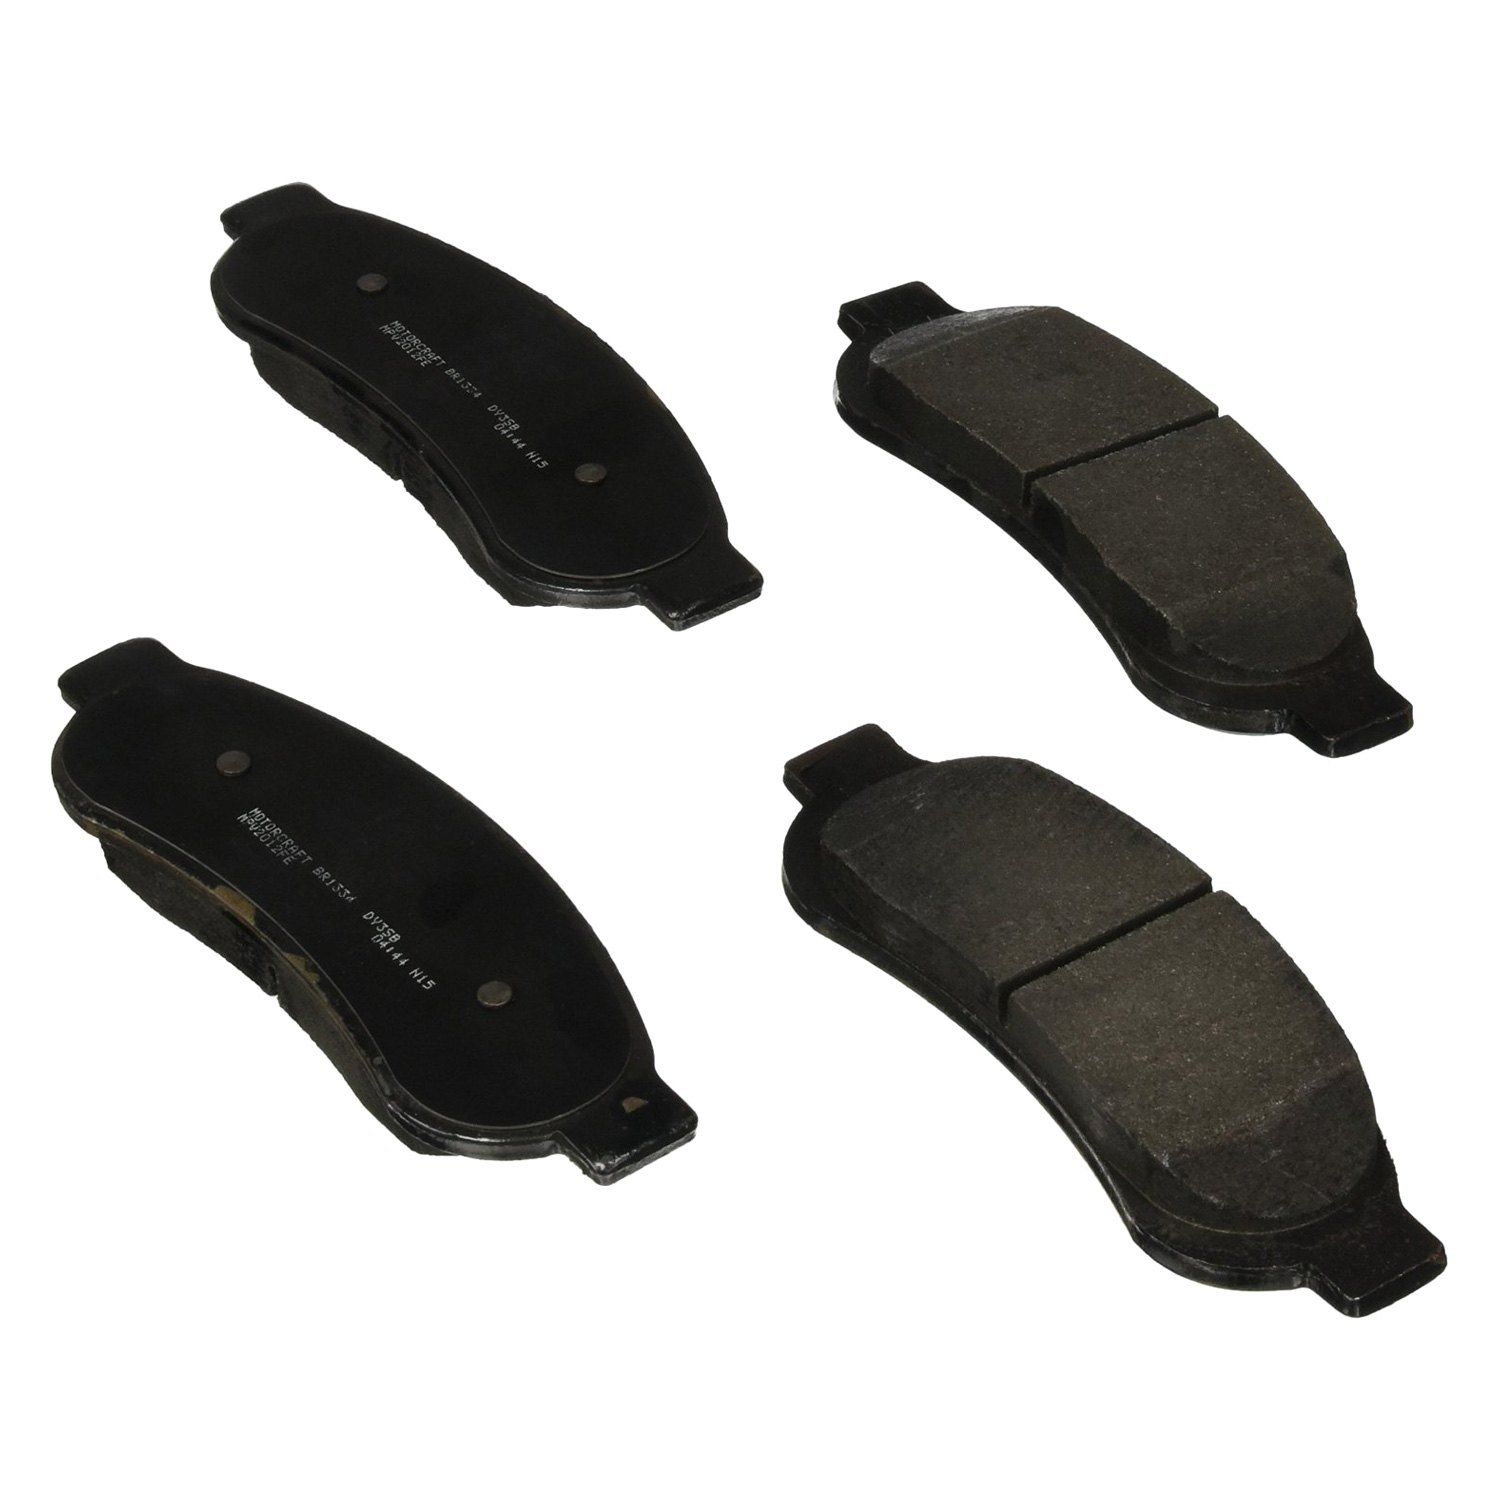 Disc Brake Pad-Standard Premium Front fits 08-12 Ford F-250 Super Duty